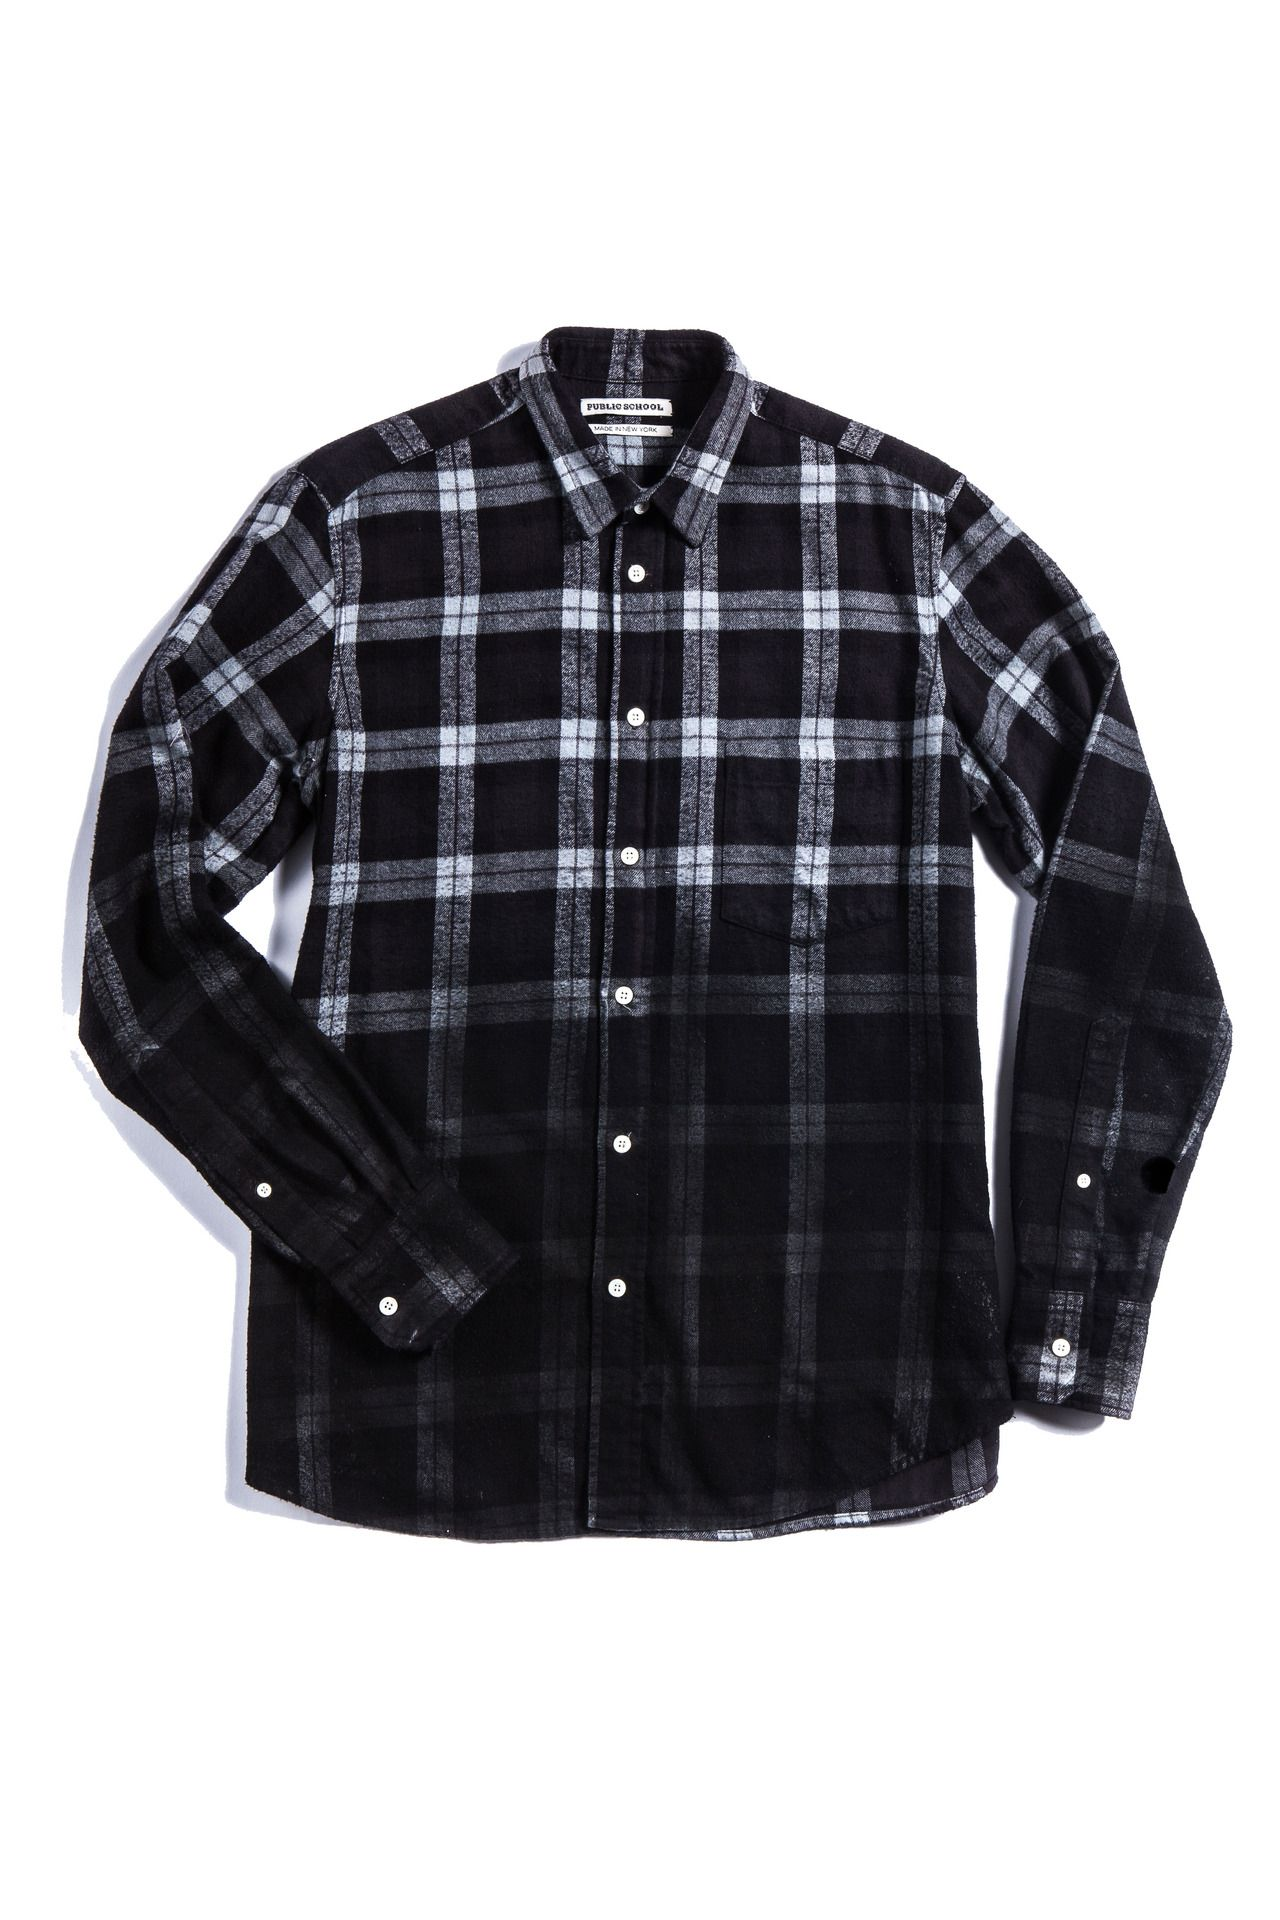 179833a29dbff + faded Mens Trends